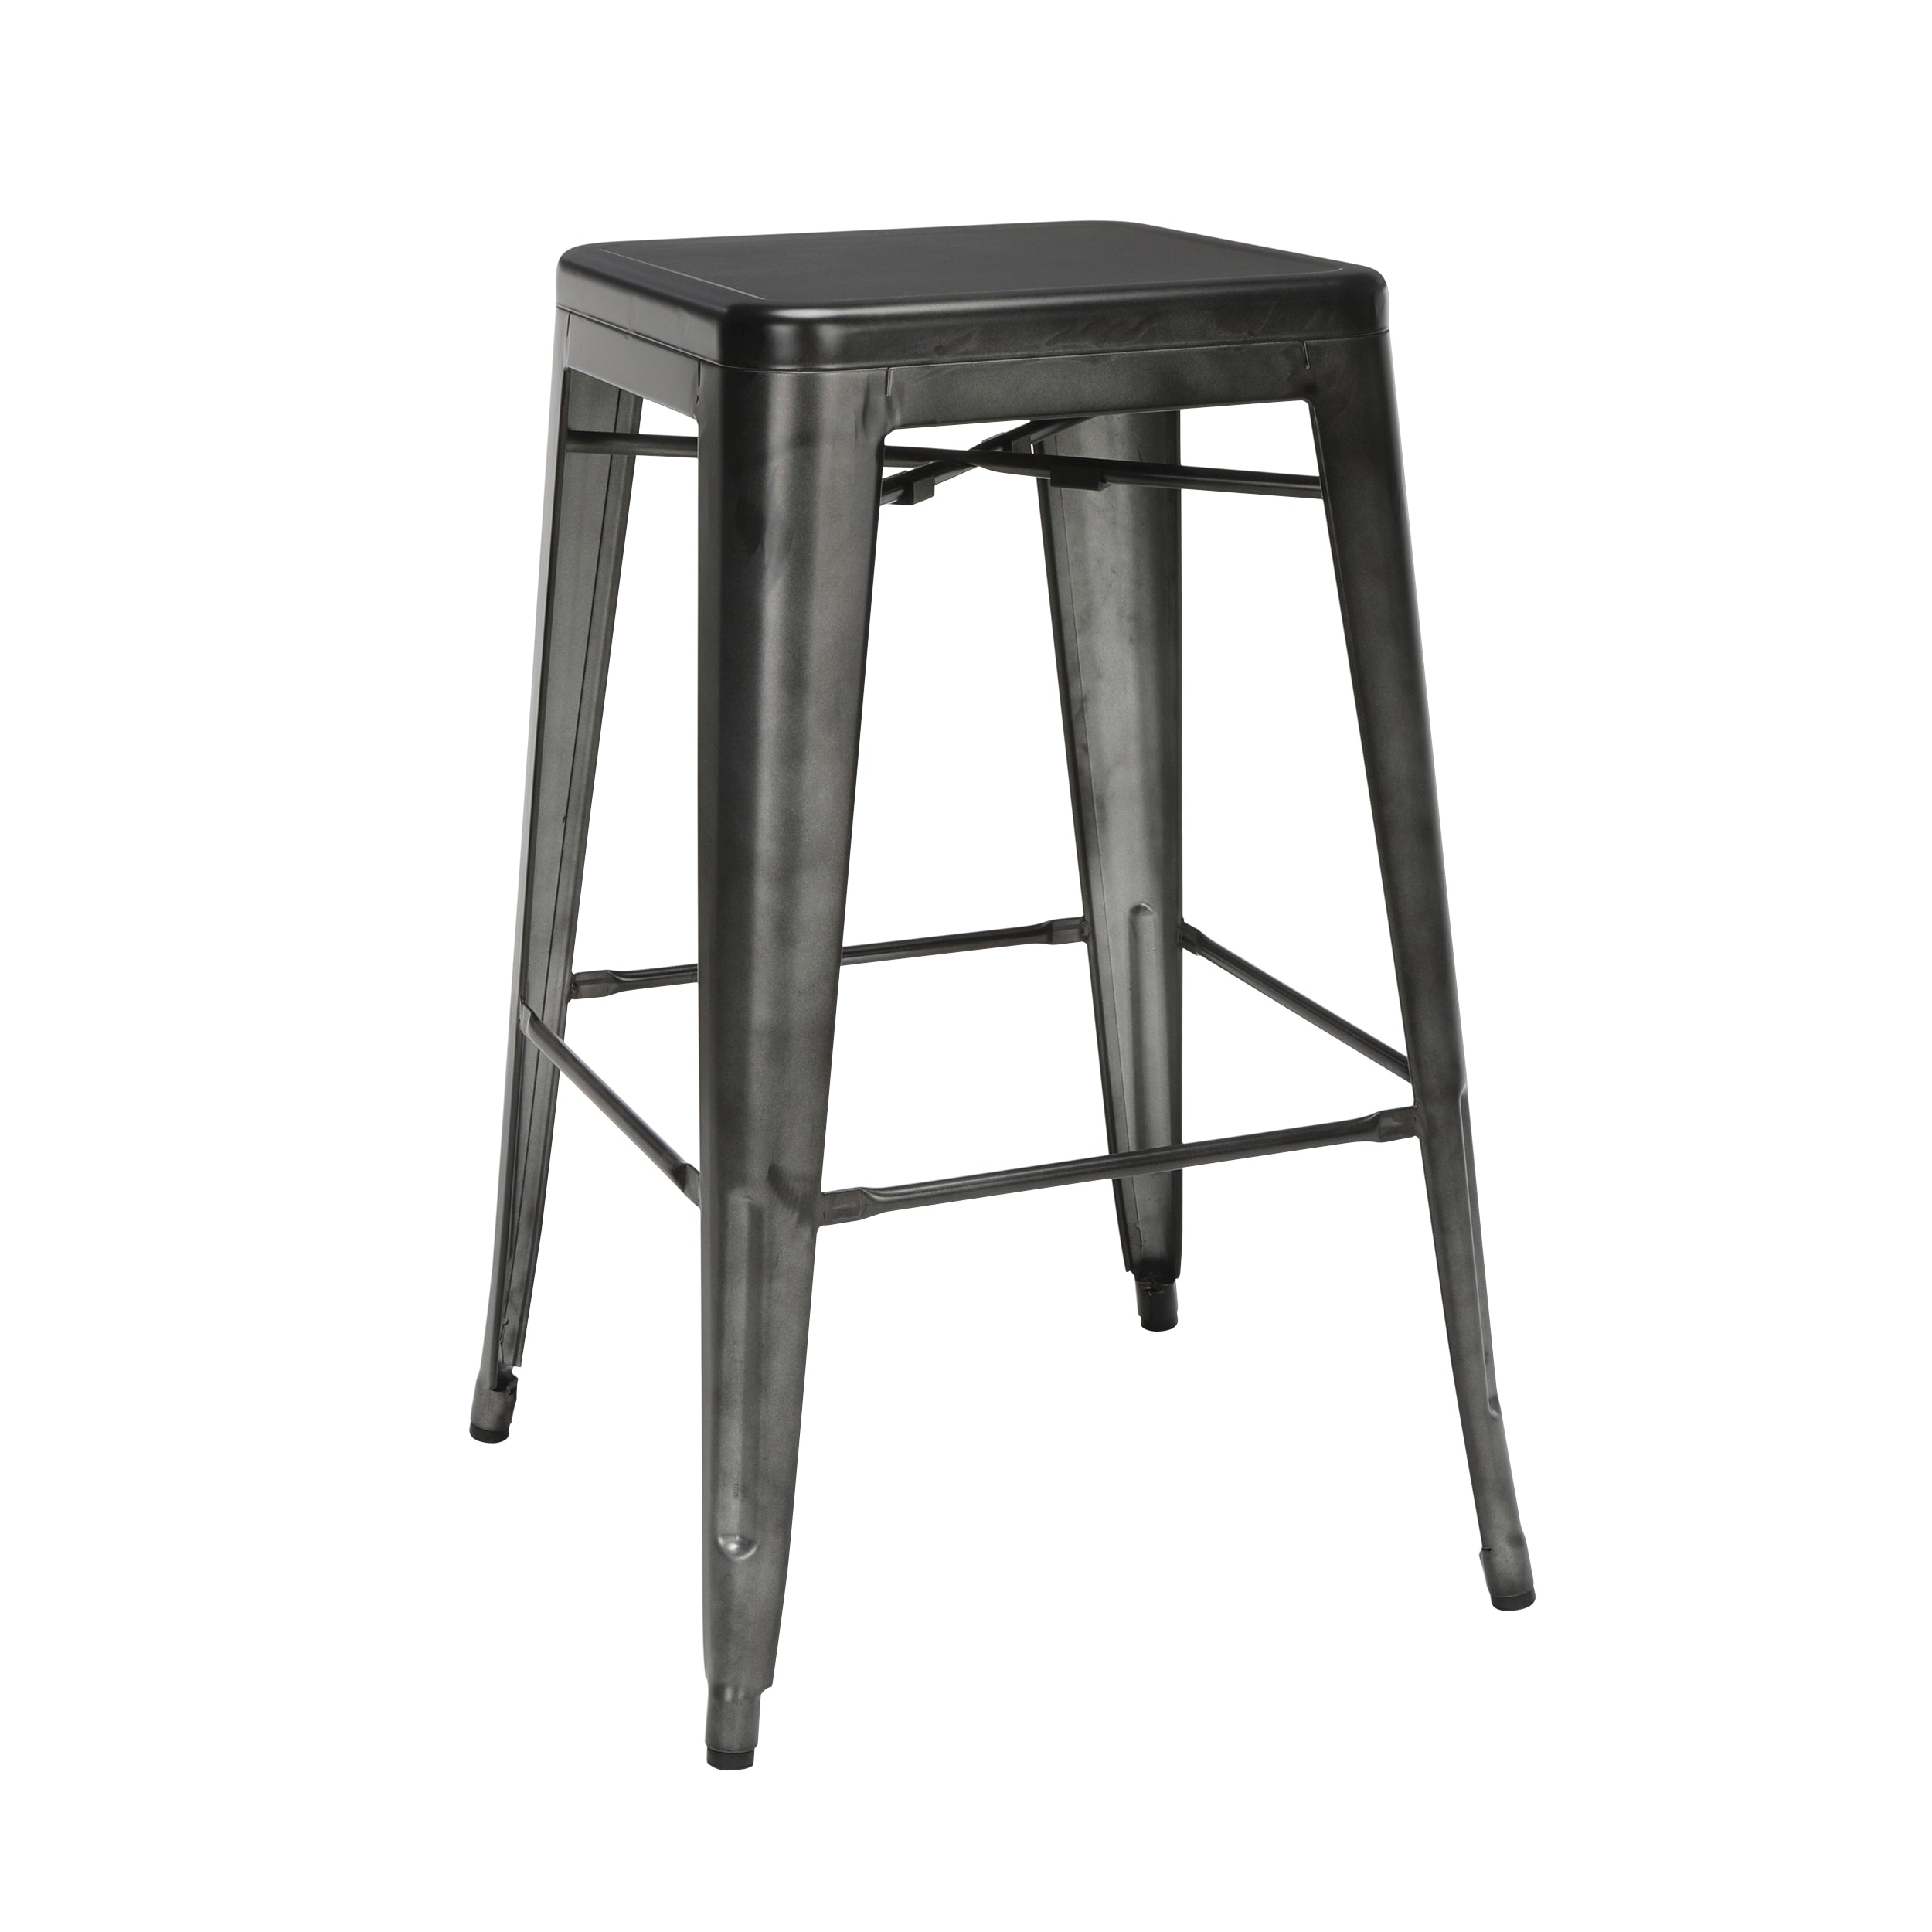 "30"" Backless Bar Height Metal Stool Steel with Oversized Seat-Gunmetal"